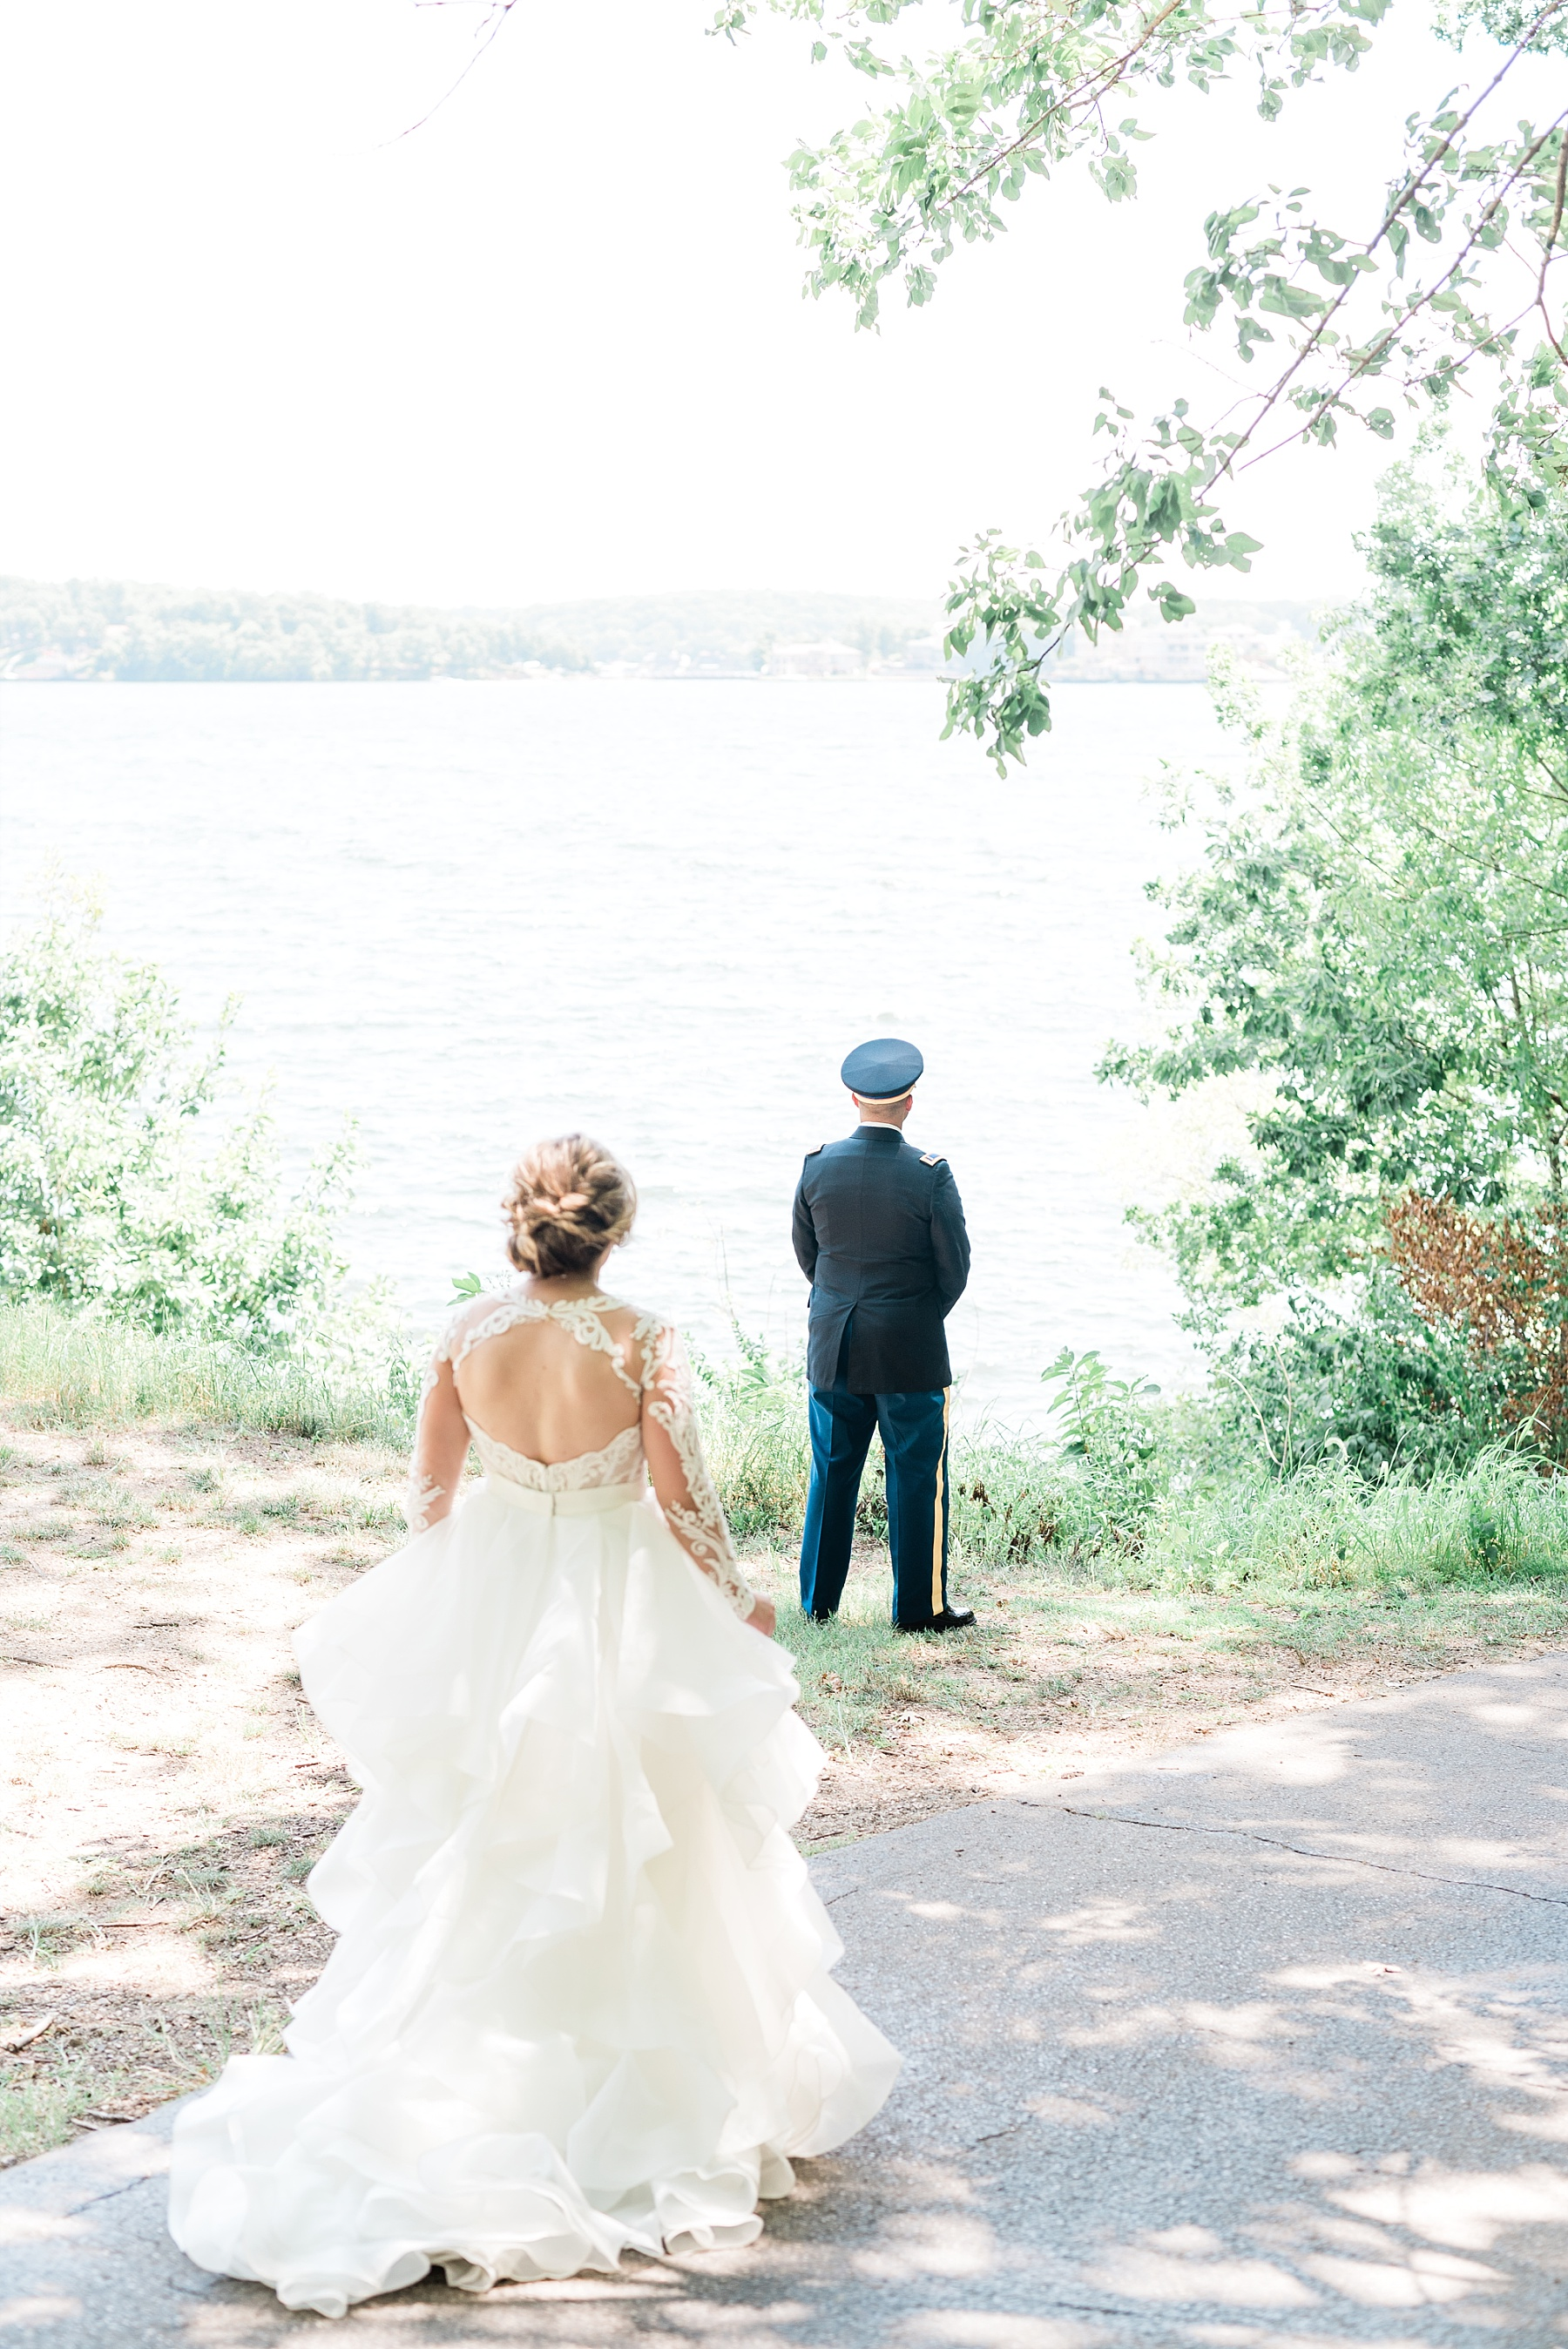 Beachside Sunset Wedding At Lodge Of Four Seasons At Lake Of The Ozarks By Kelsi Kliethermes Photography_0003.jpg